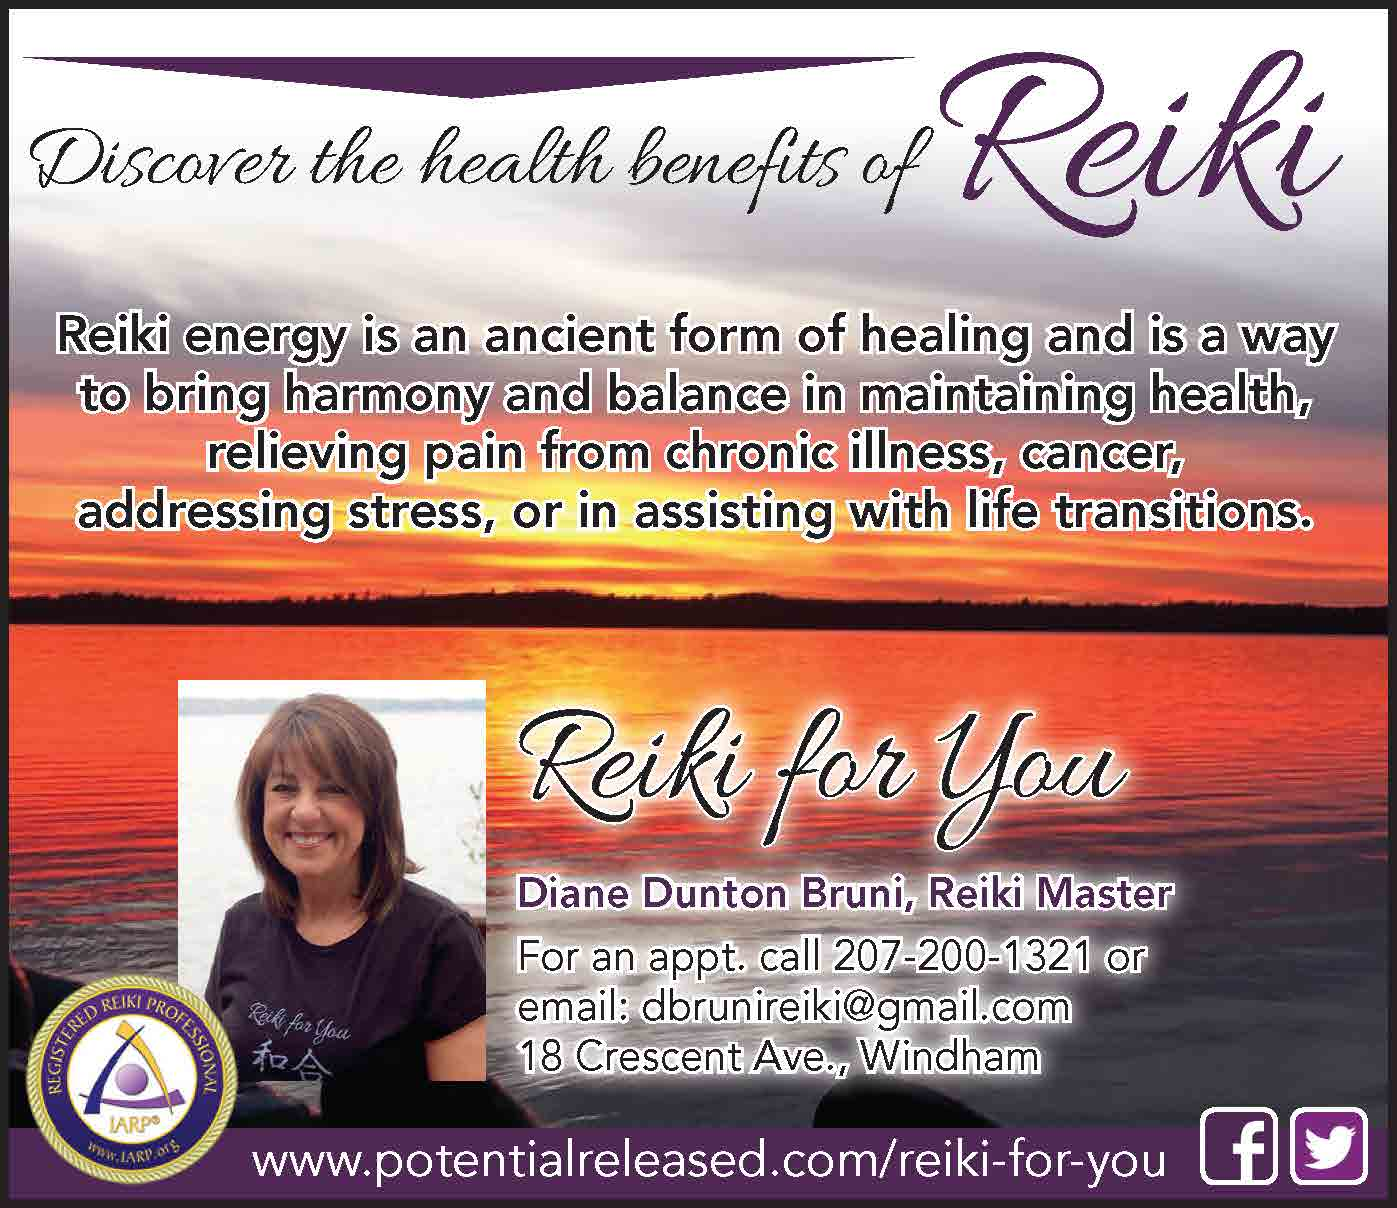 https://www.potentialreleased.com/reiki-for-you